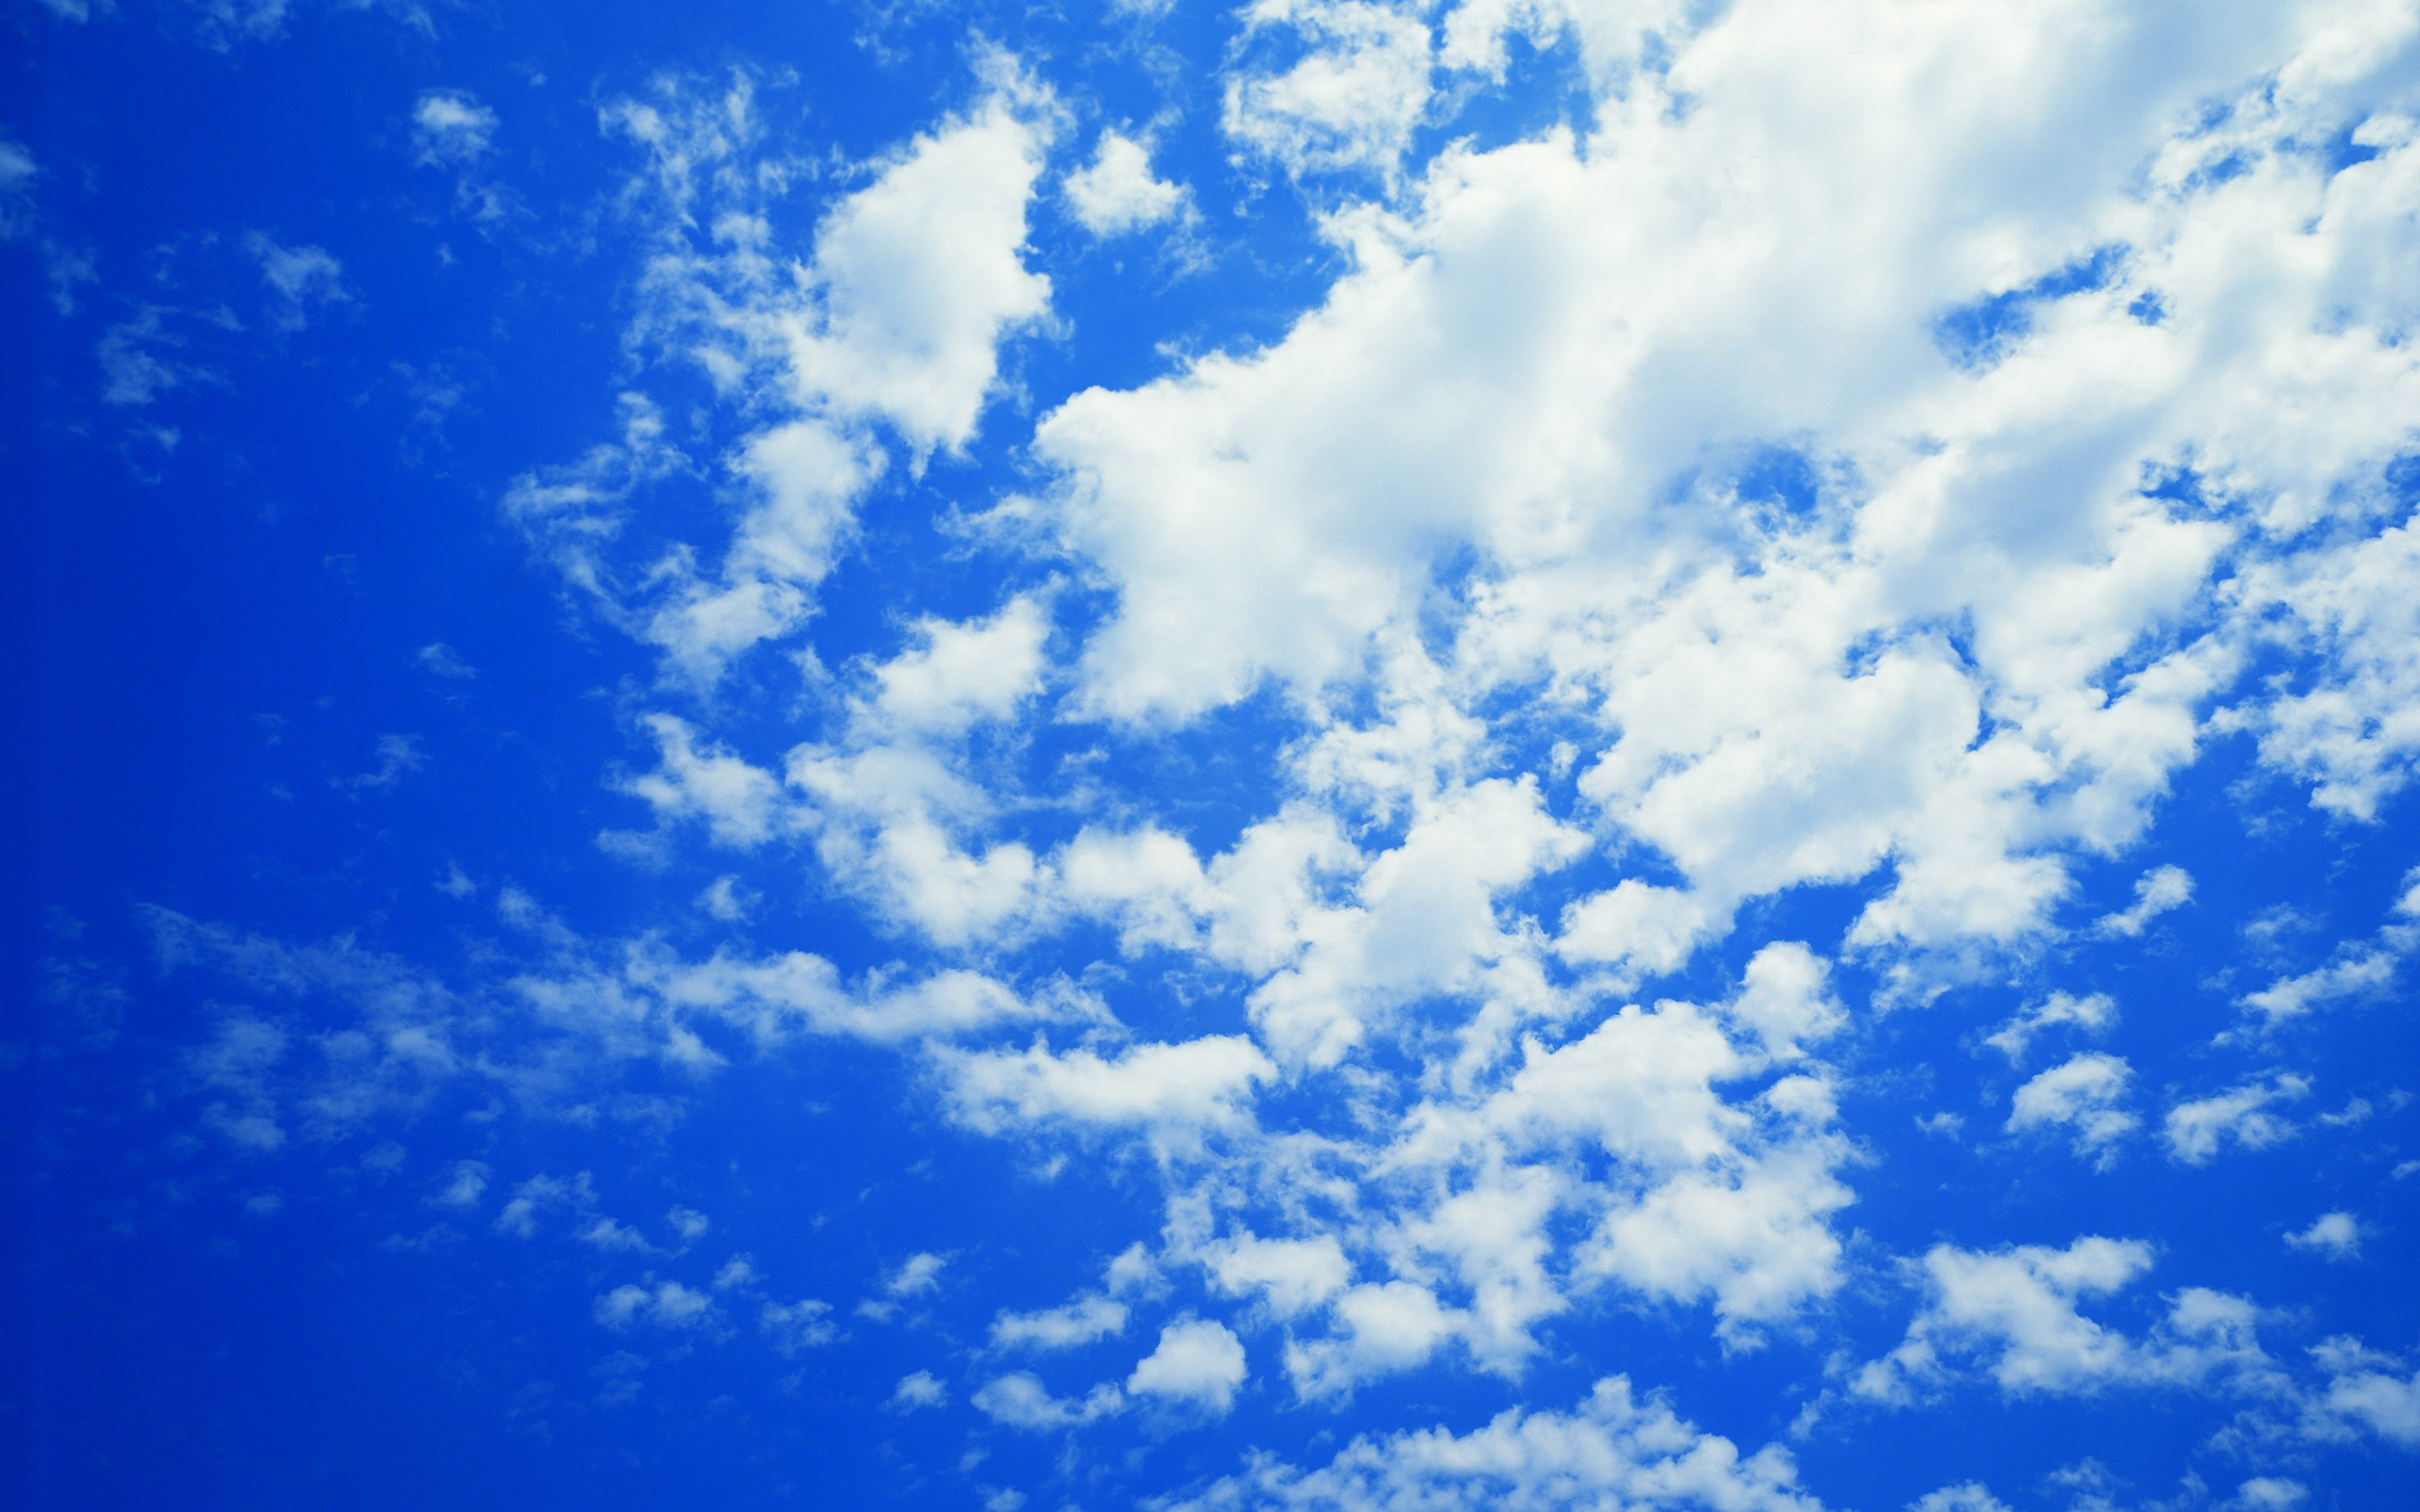 blue sky wallpaper full hd pictures